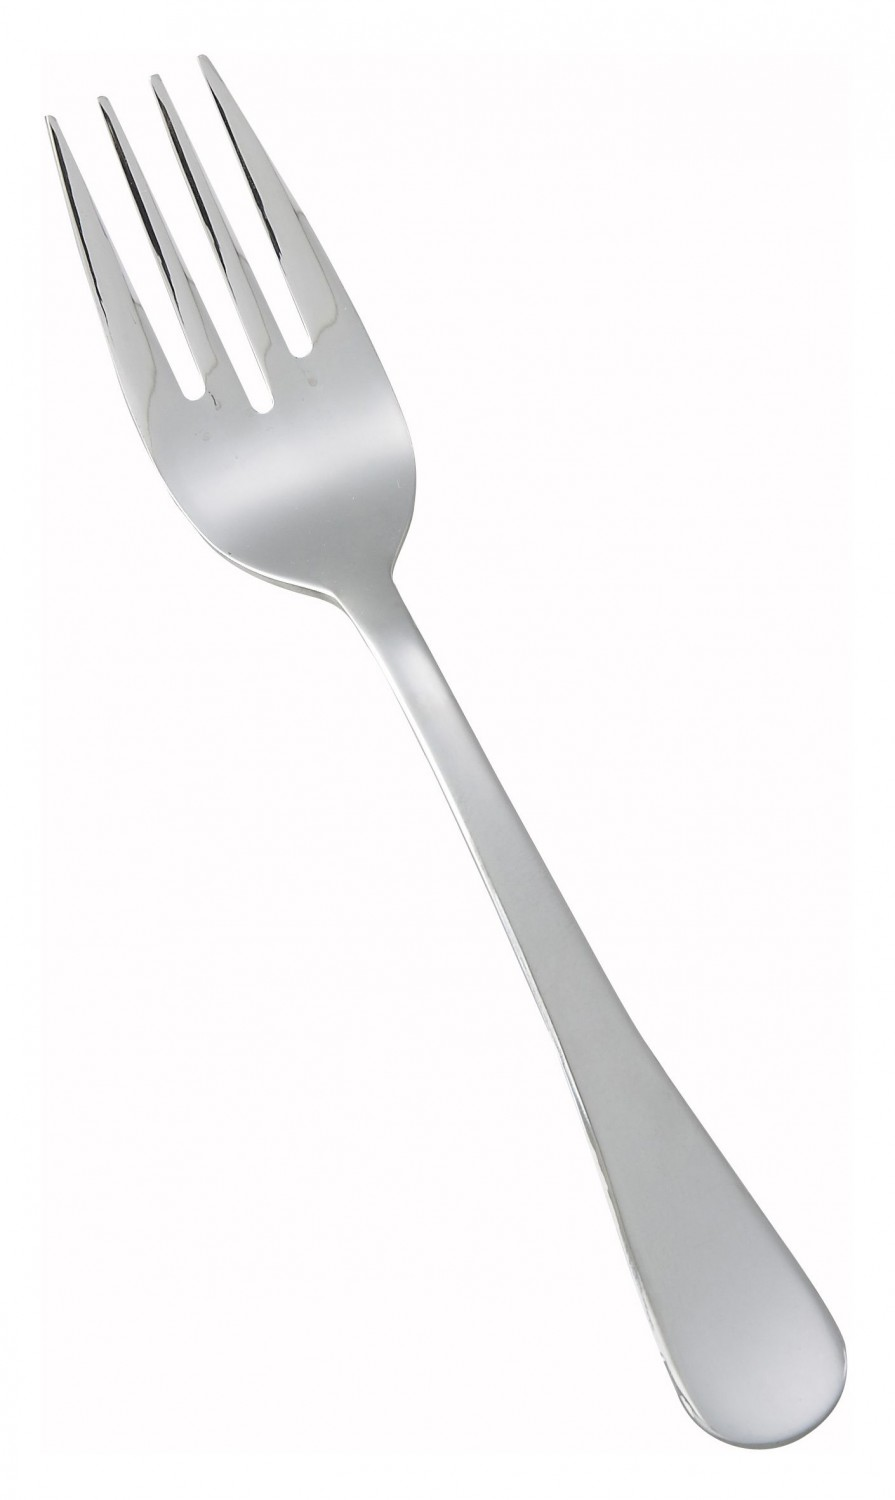 Winco 0026-06 Elite Heavy Weight 18/0 Stainless Steel Salad Fork - 1 doz